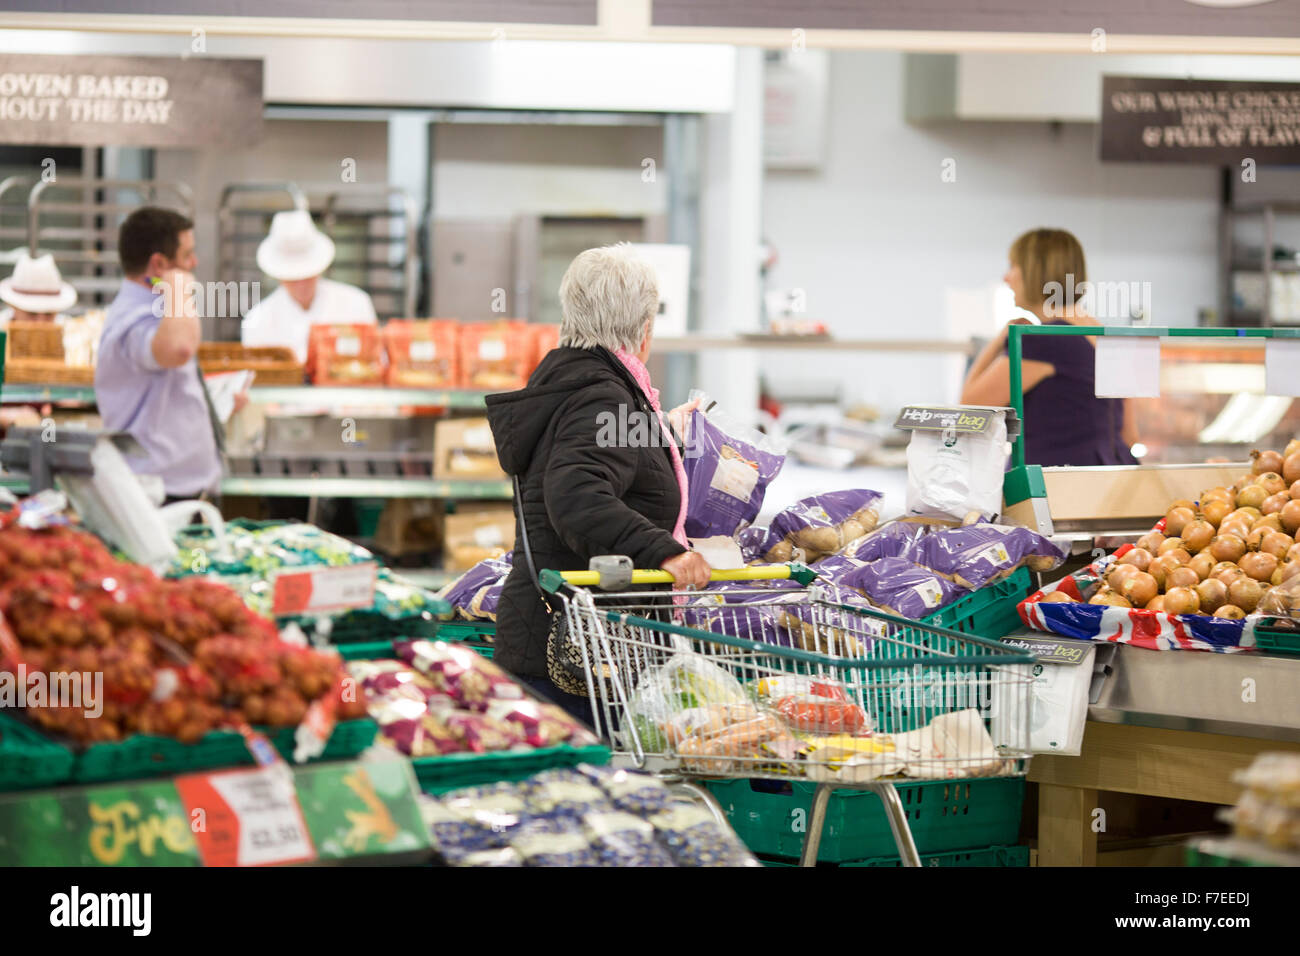 a woman shops in  Morrisons , Squire Gate Lane , Blackpool. - Stock Image